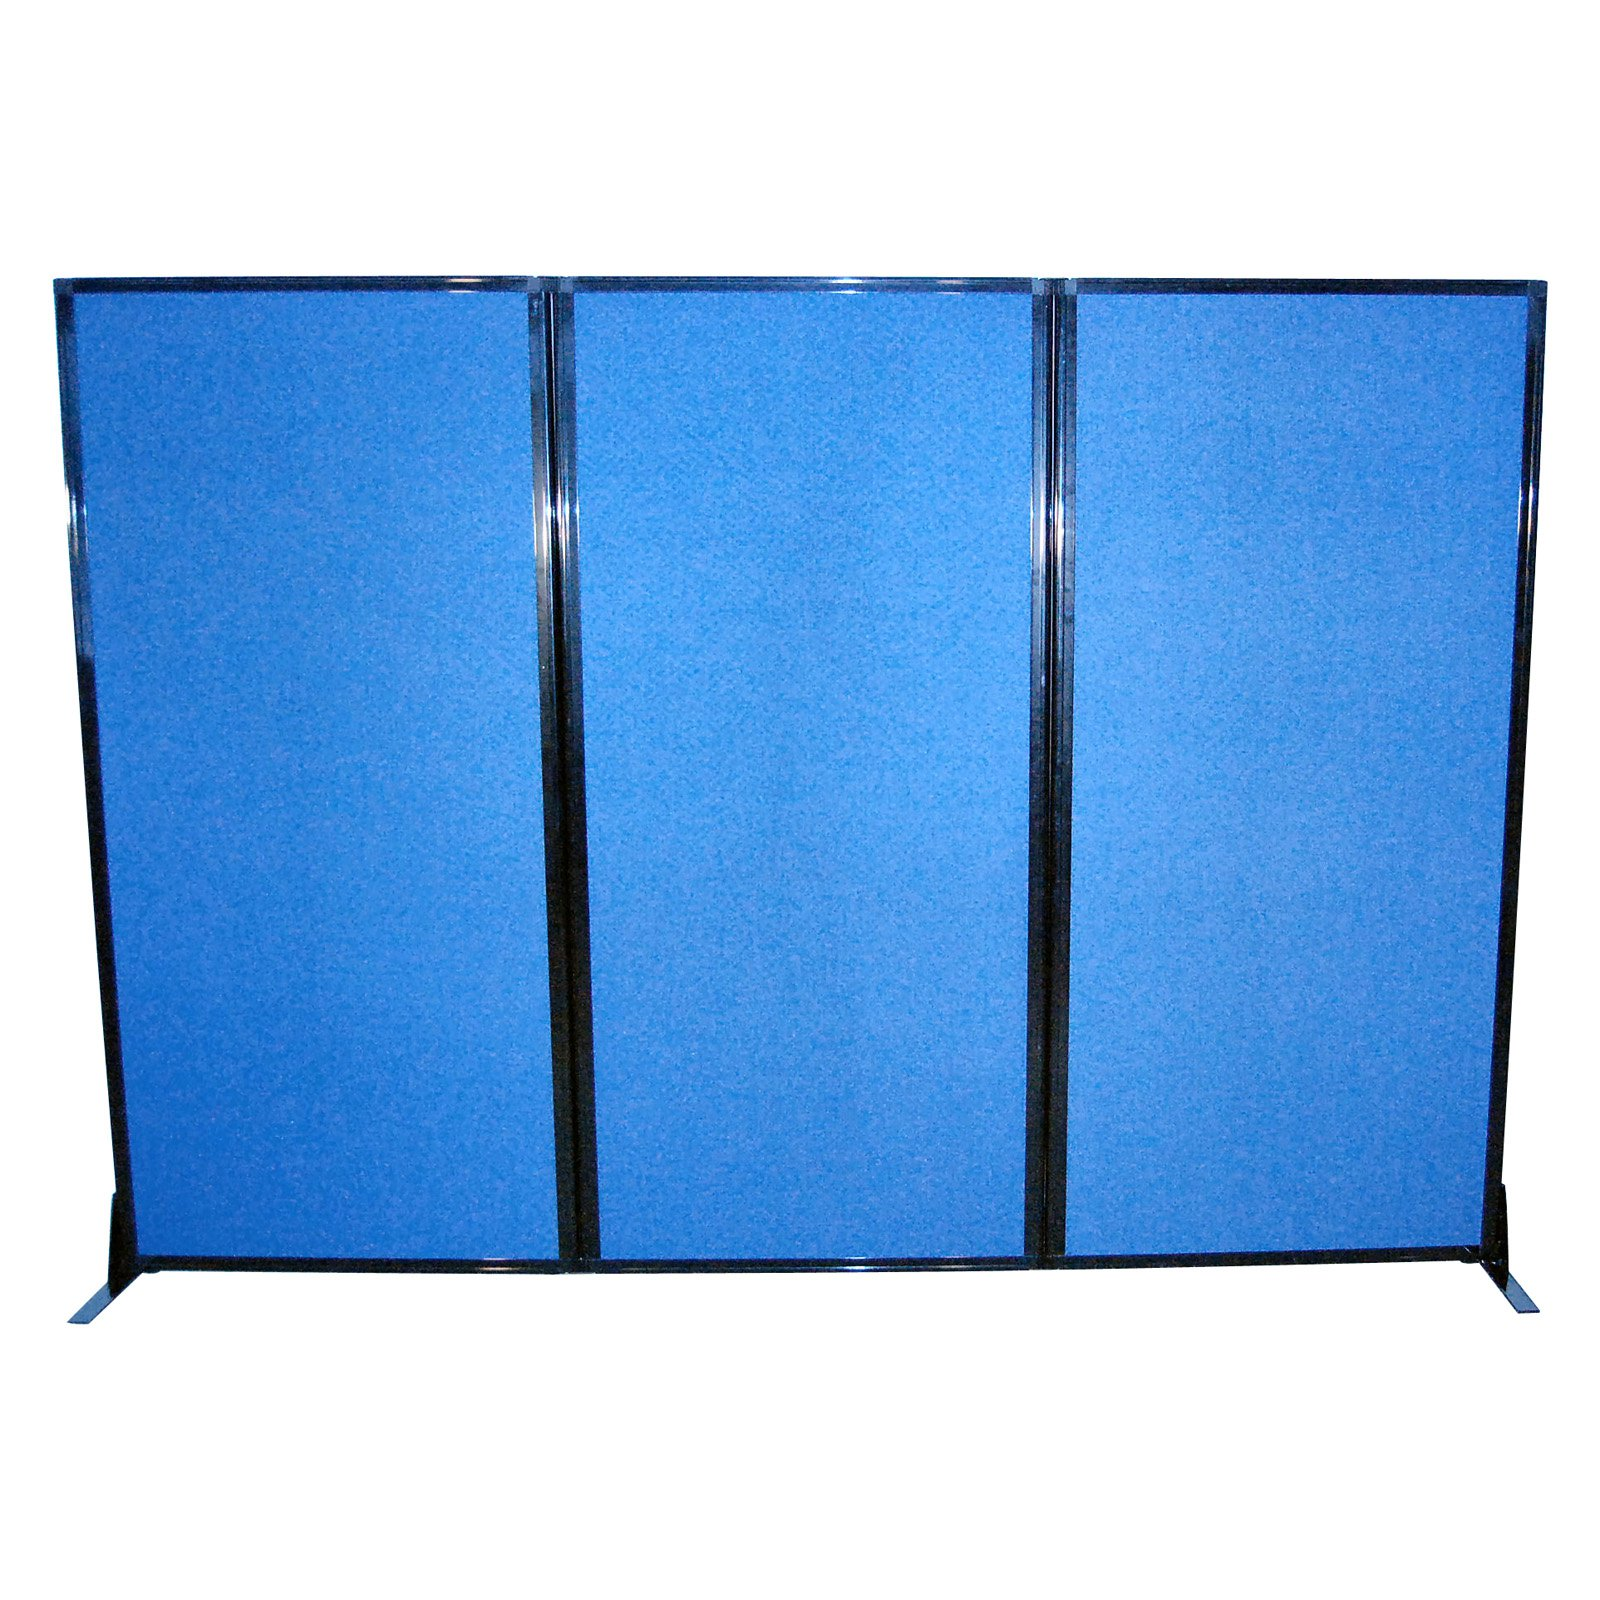 Versare Afford-A-Wall Articulating Room Divider - 8.5W ft.